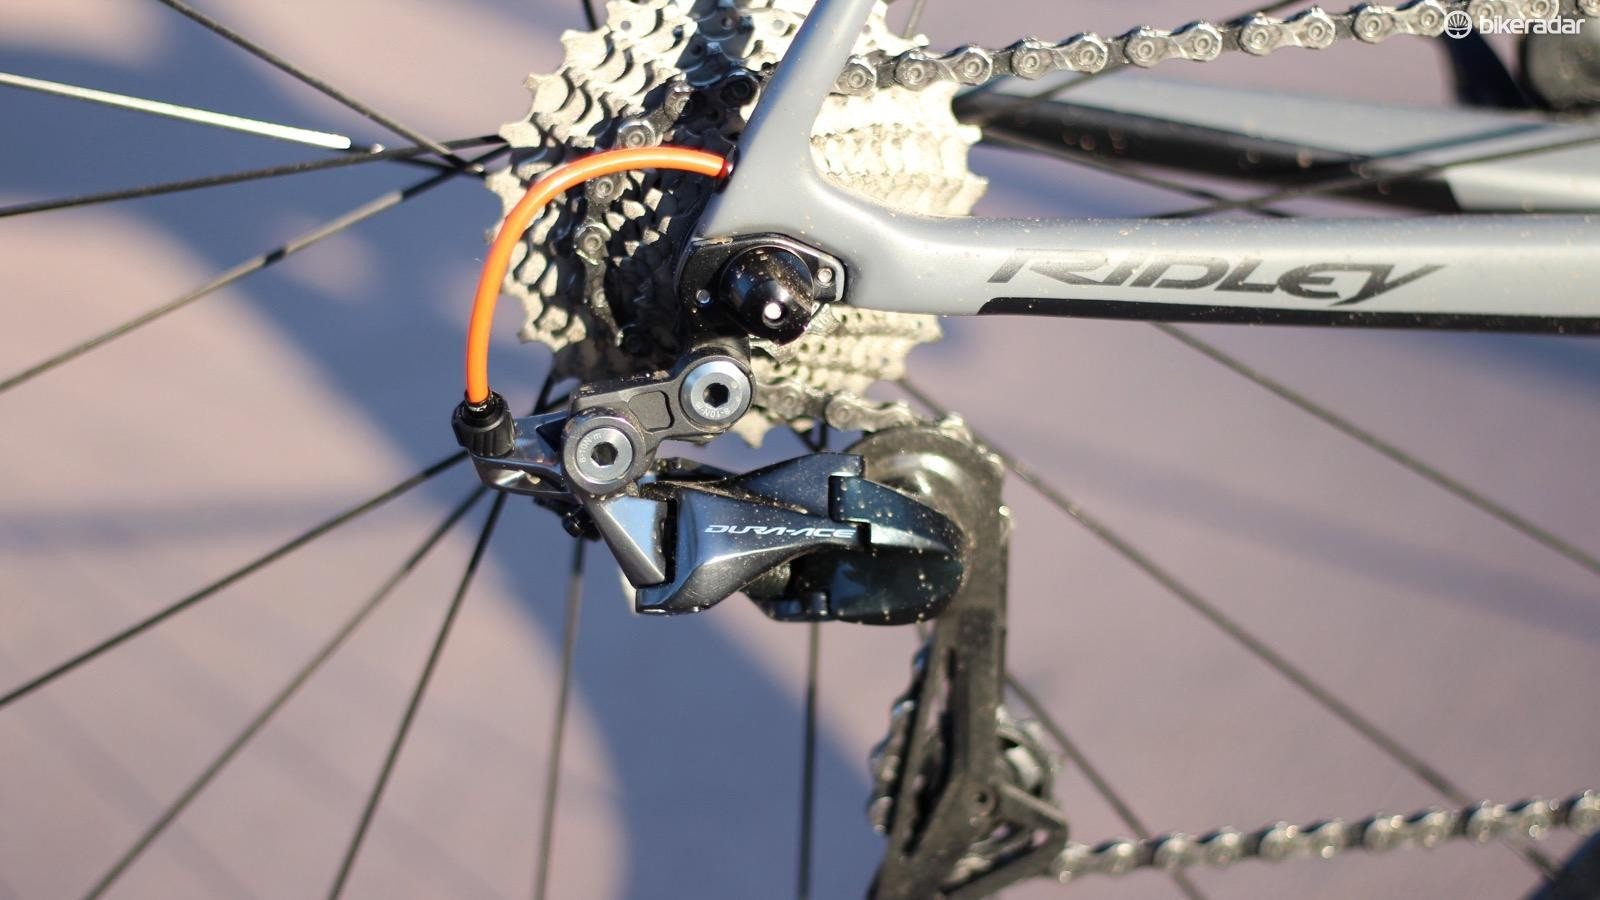 Shimano's new Dura-Ace 9100 is flawless in performance